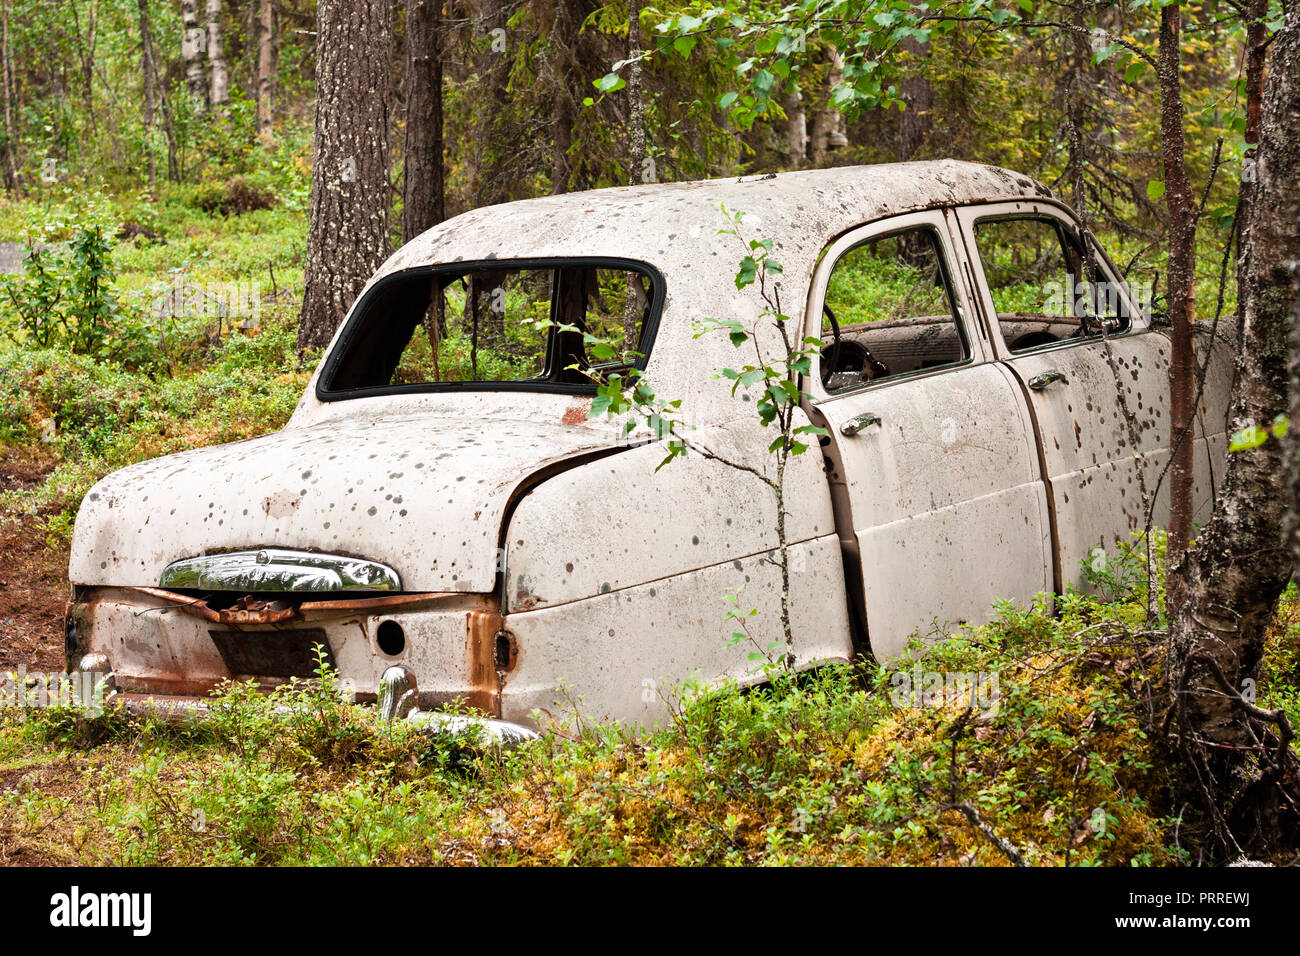 Abandoned rusted car deep in the forest - Stock Image